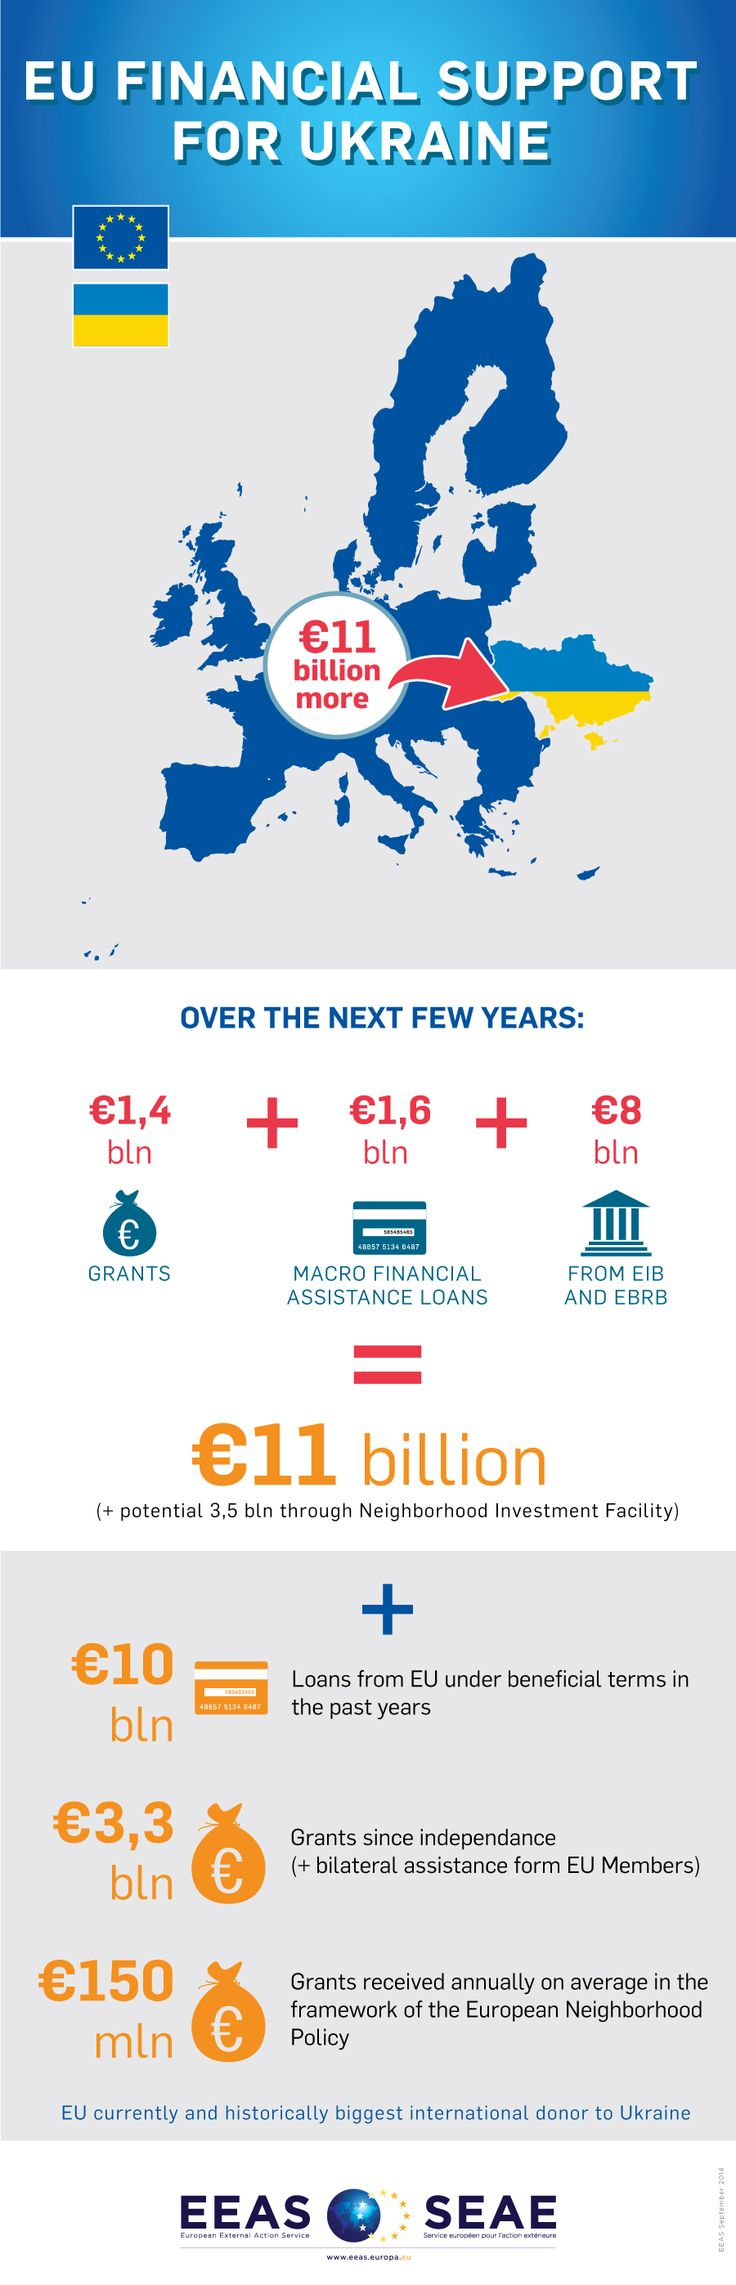 The infographic sums up concrete measures that the European Commission is proposing for the short and medium term to help stabilise the economic and financial situation in #Ukraine to assist with the transition, encourage political and economic reforms and support inclusive development for the benefit of all Ukrainians. More information: http://europa.eu/!Px83mq